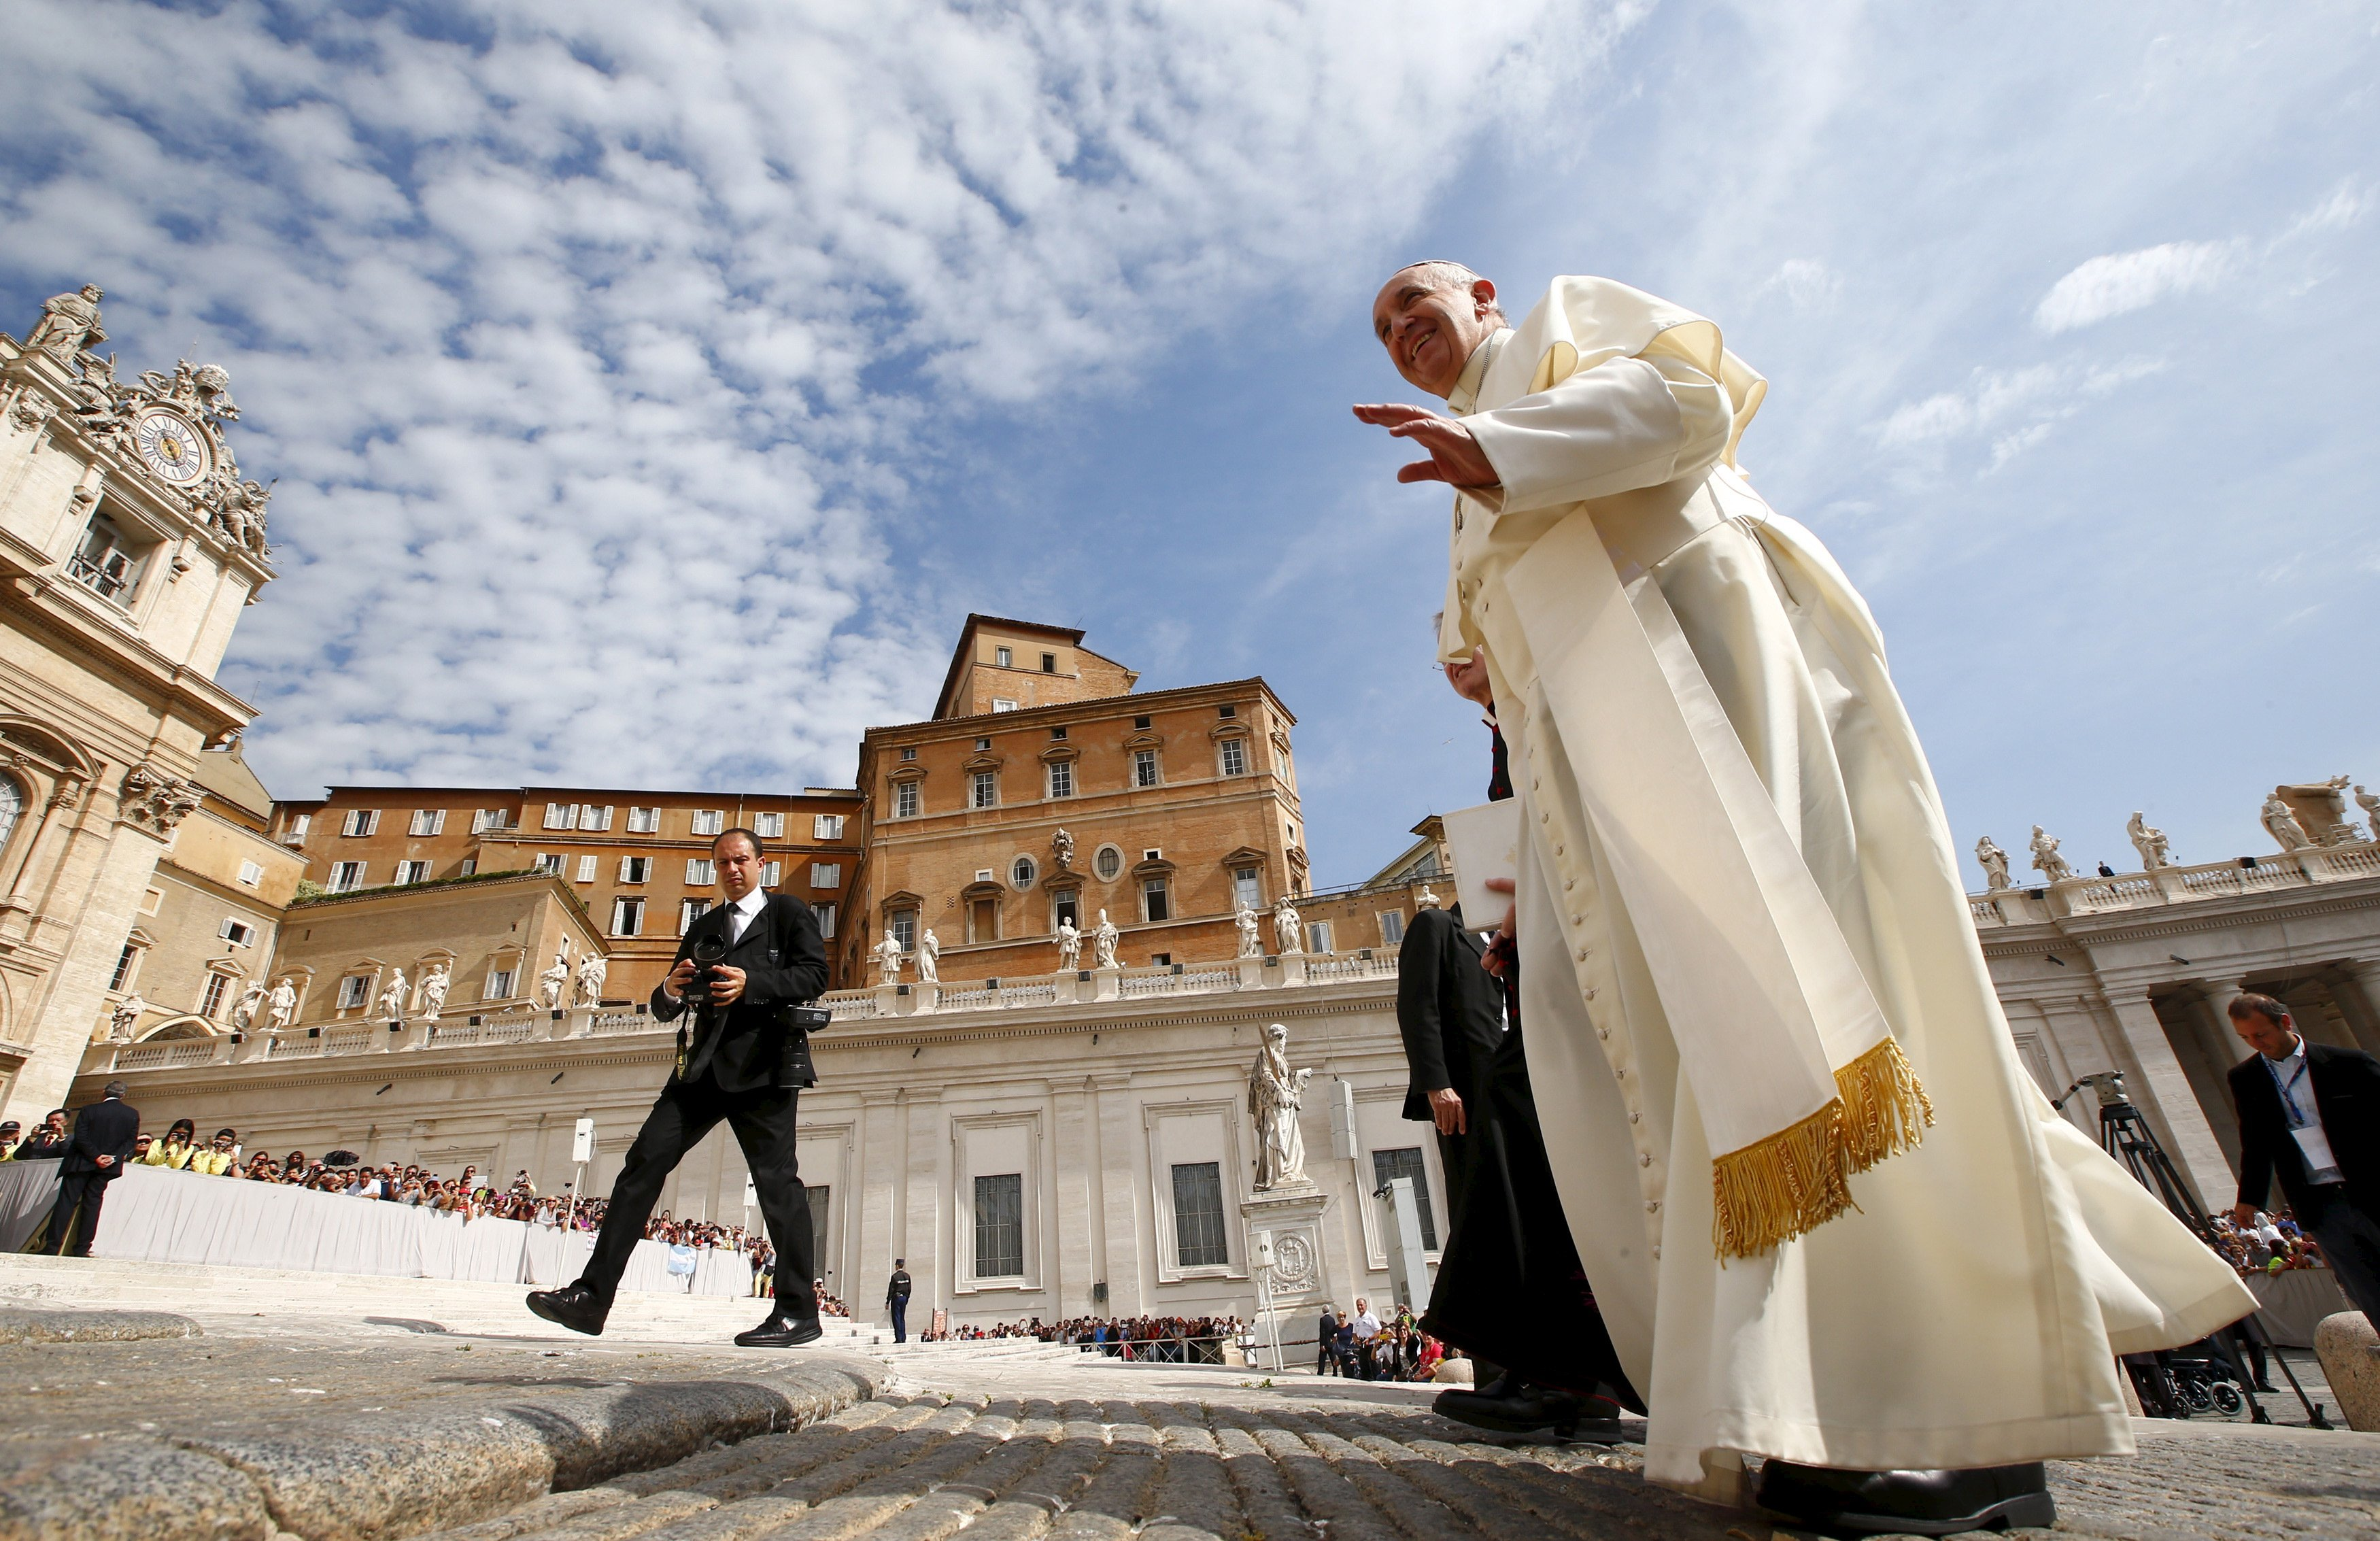 Pope Francis gestures as he arrives to lead his Wednesday general audience in Saint Peter's square at the Vatican May 20, 2015. REUTERS/Tony Gentile - RTX1DQJD